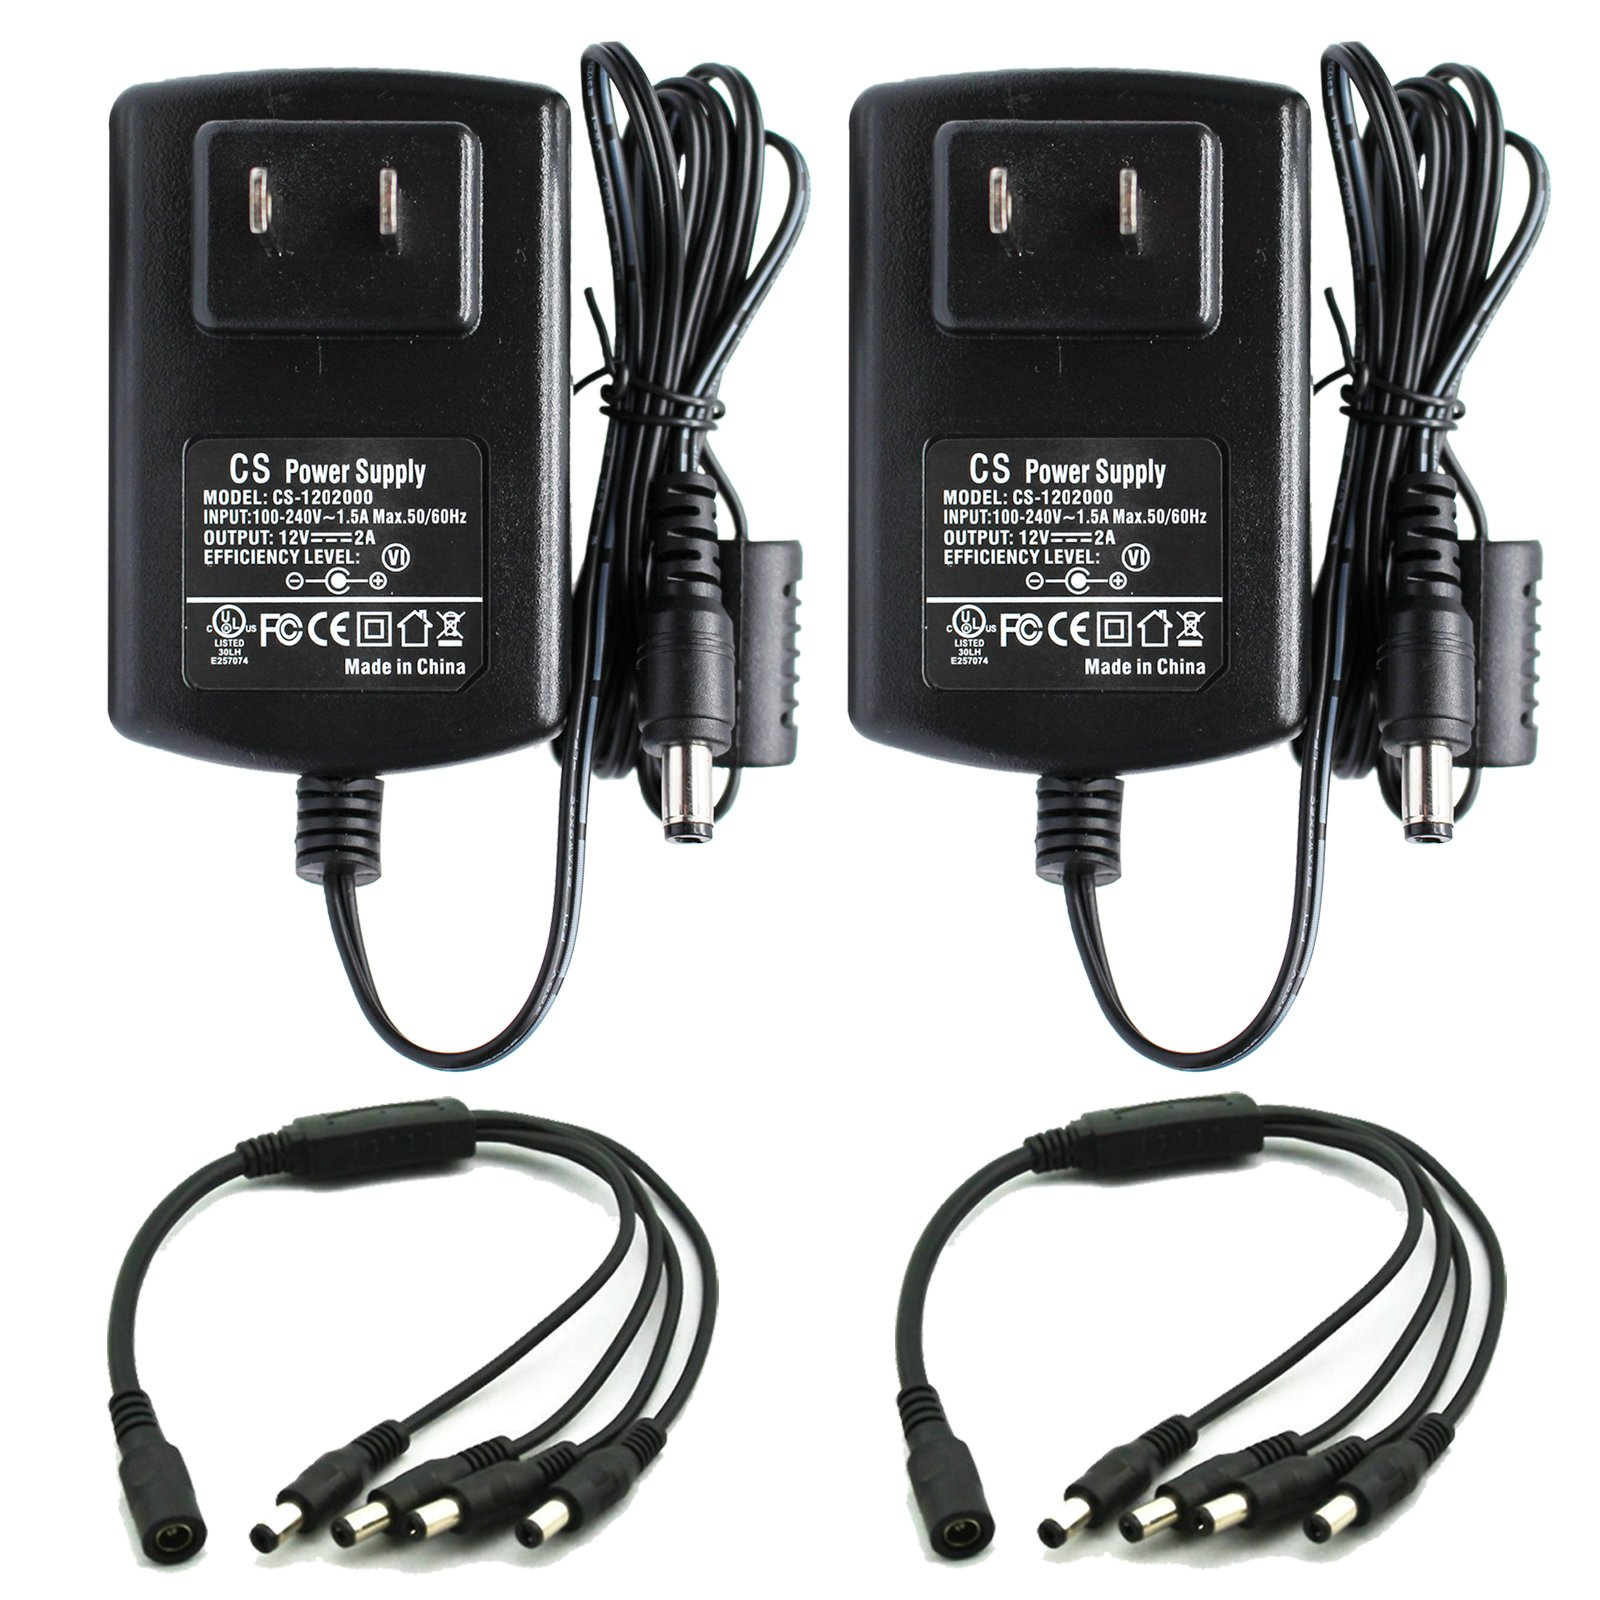 ANVISION 2-Pack AC to DC 12V 2A 2000mA Power Supply Adapter with 1 to 4 Splitter Cable 5.5x2.1mm For Led Light Strips NVR DVR Camera, Efficiency Level VI, UL Listed FCC RoHS